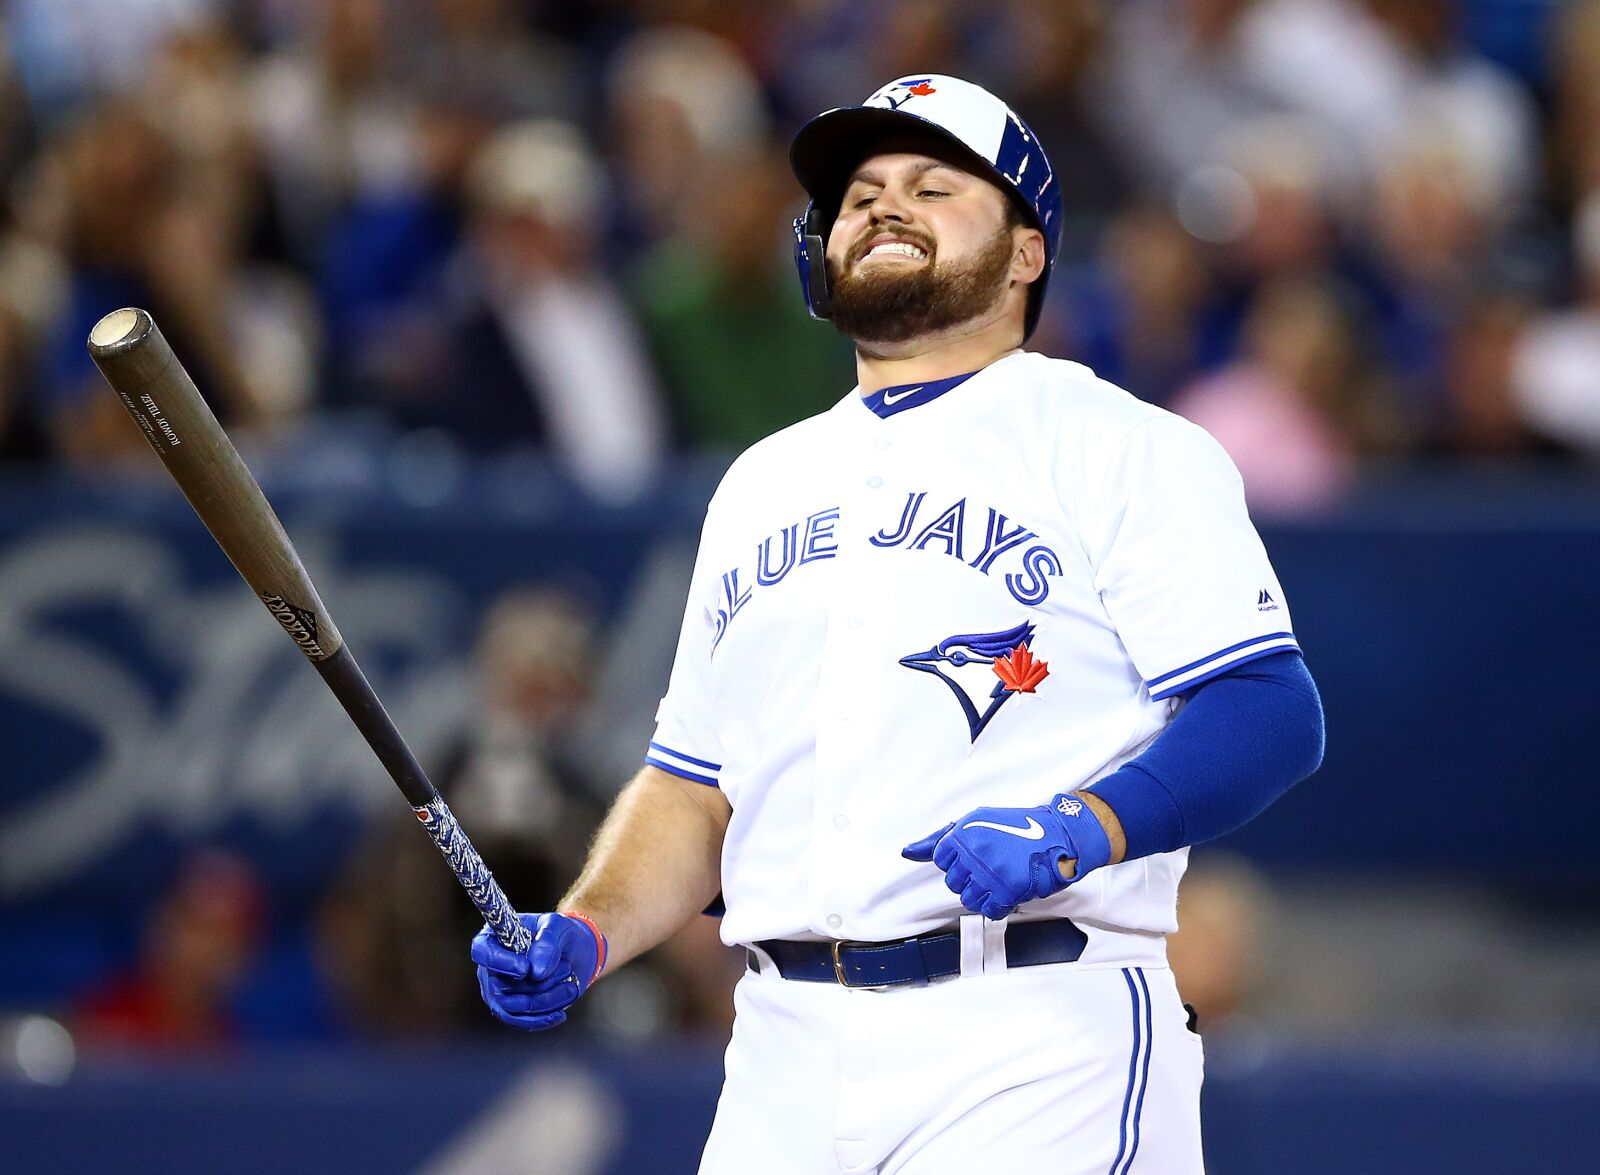 Blue Jays: Doesn't look like Rowdy Tellez will be handed a job